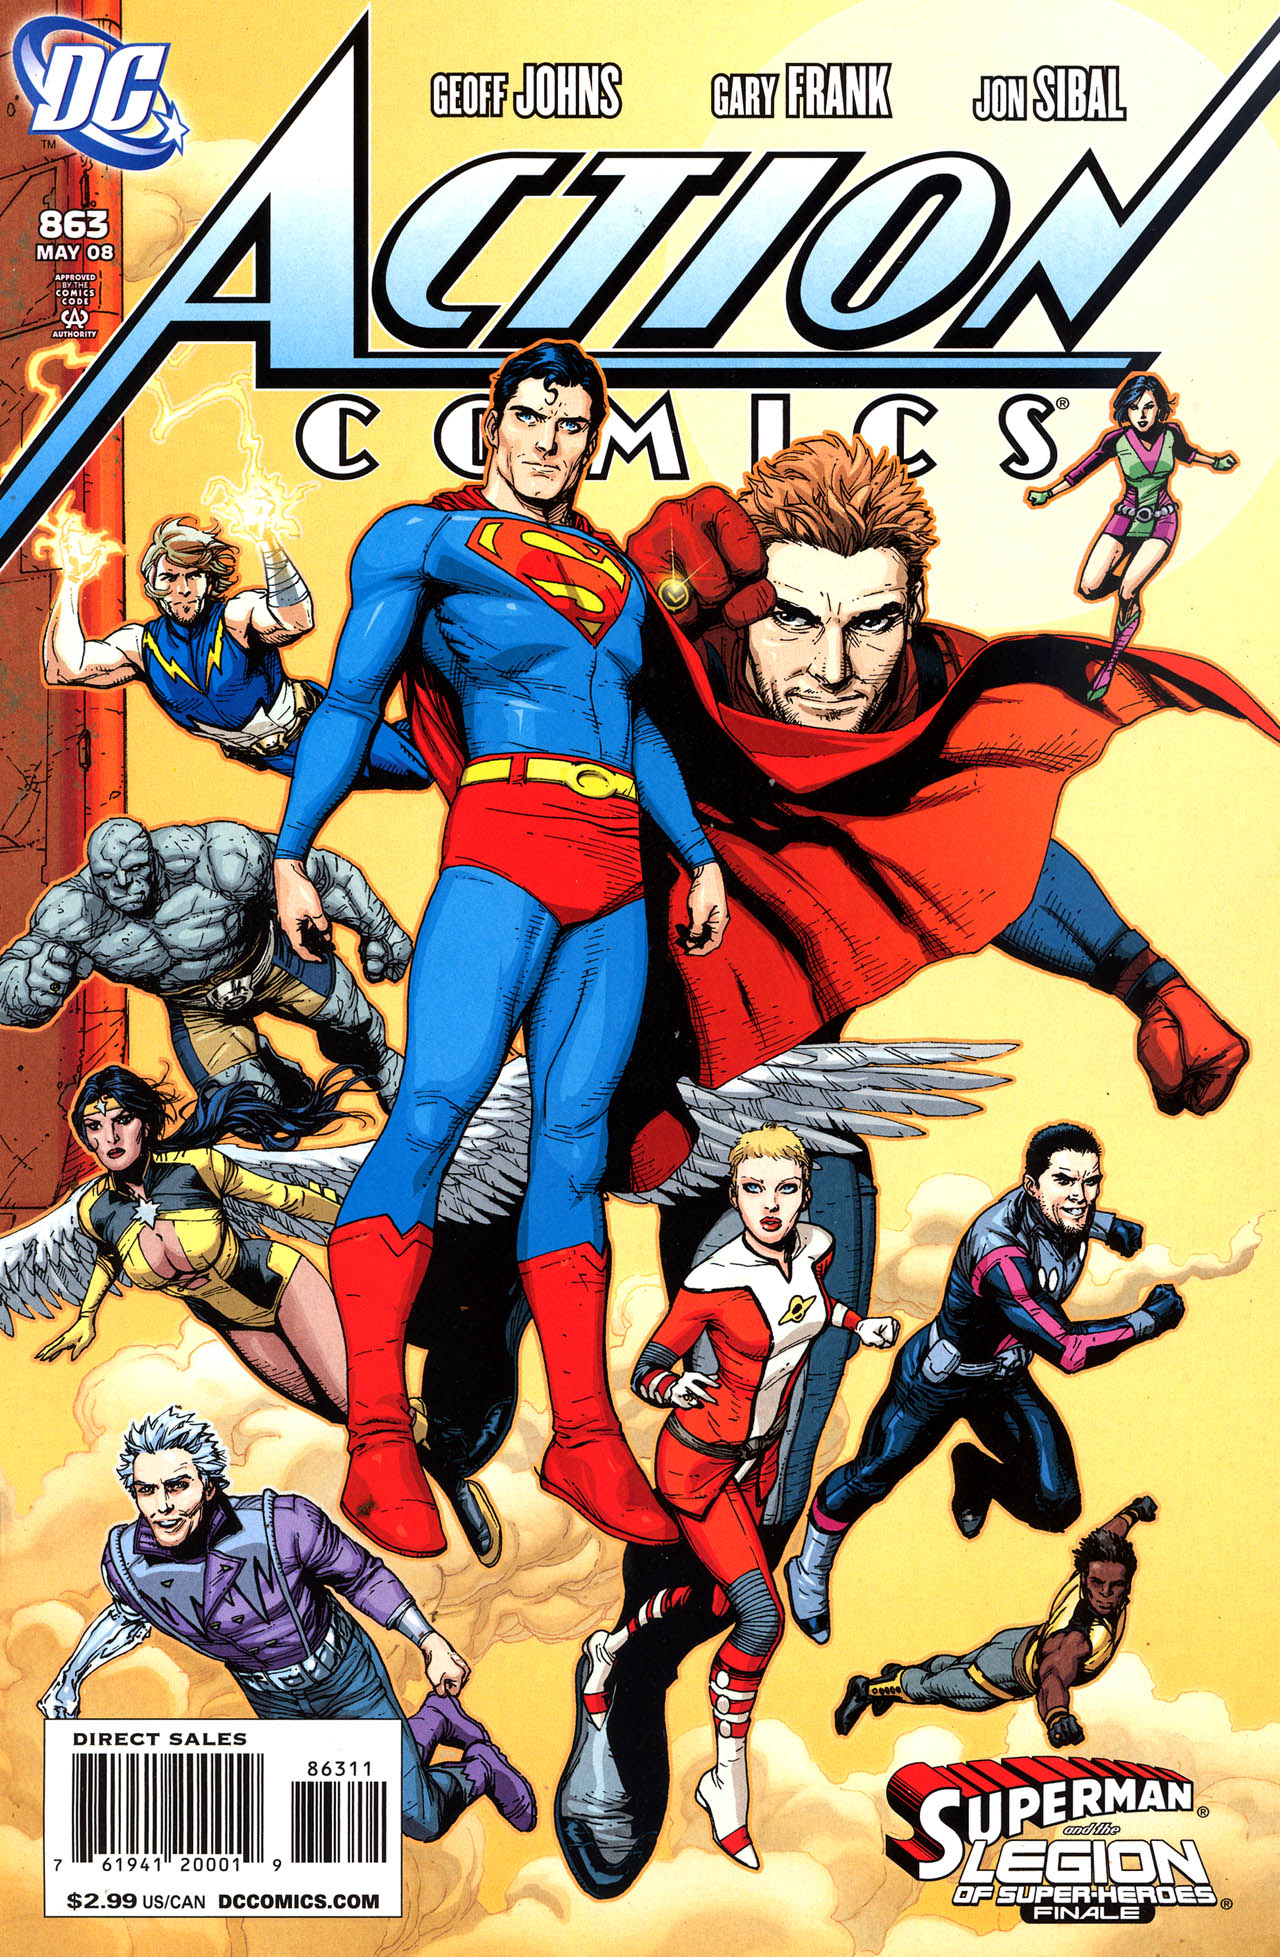 Read online Action Comics (1938) comic -  Issue #863 - 2